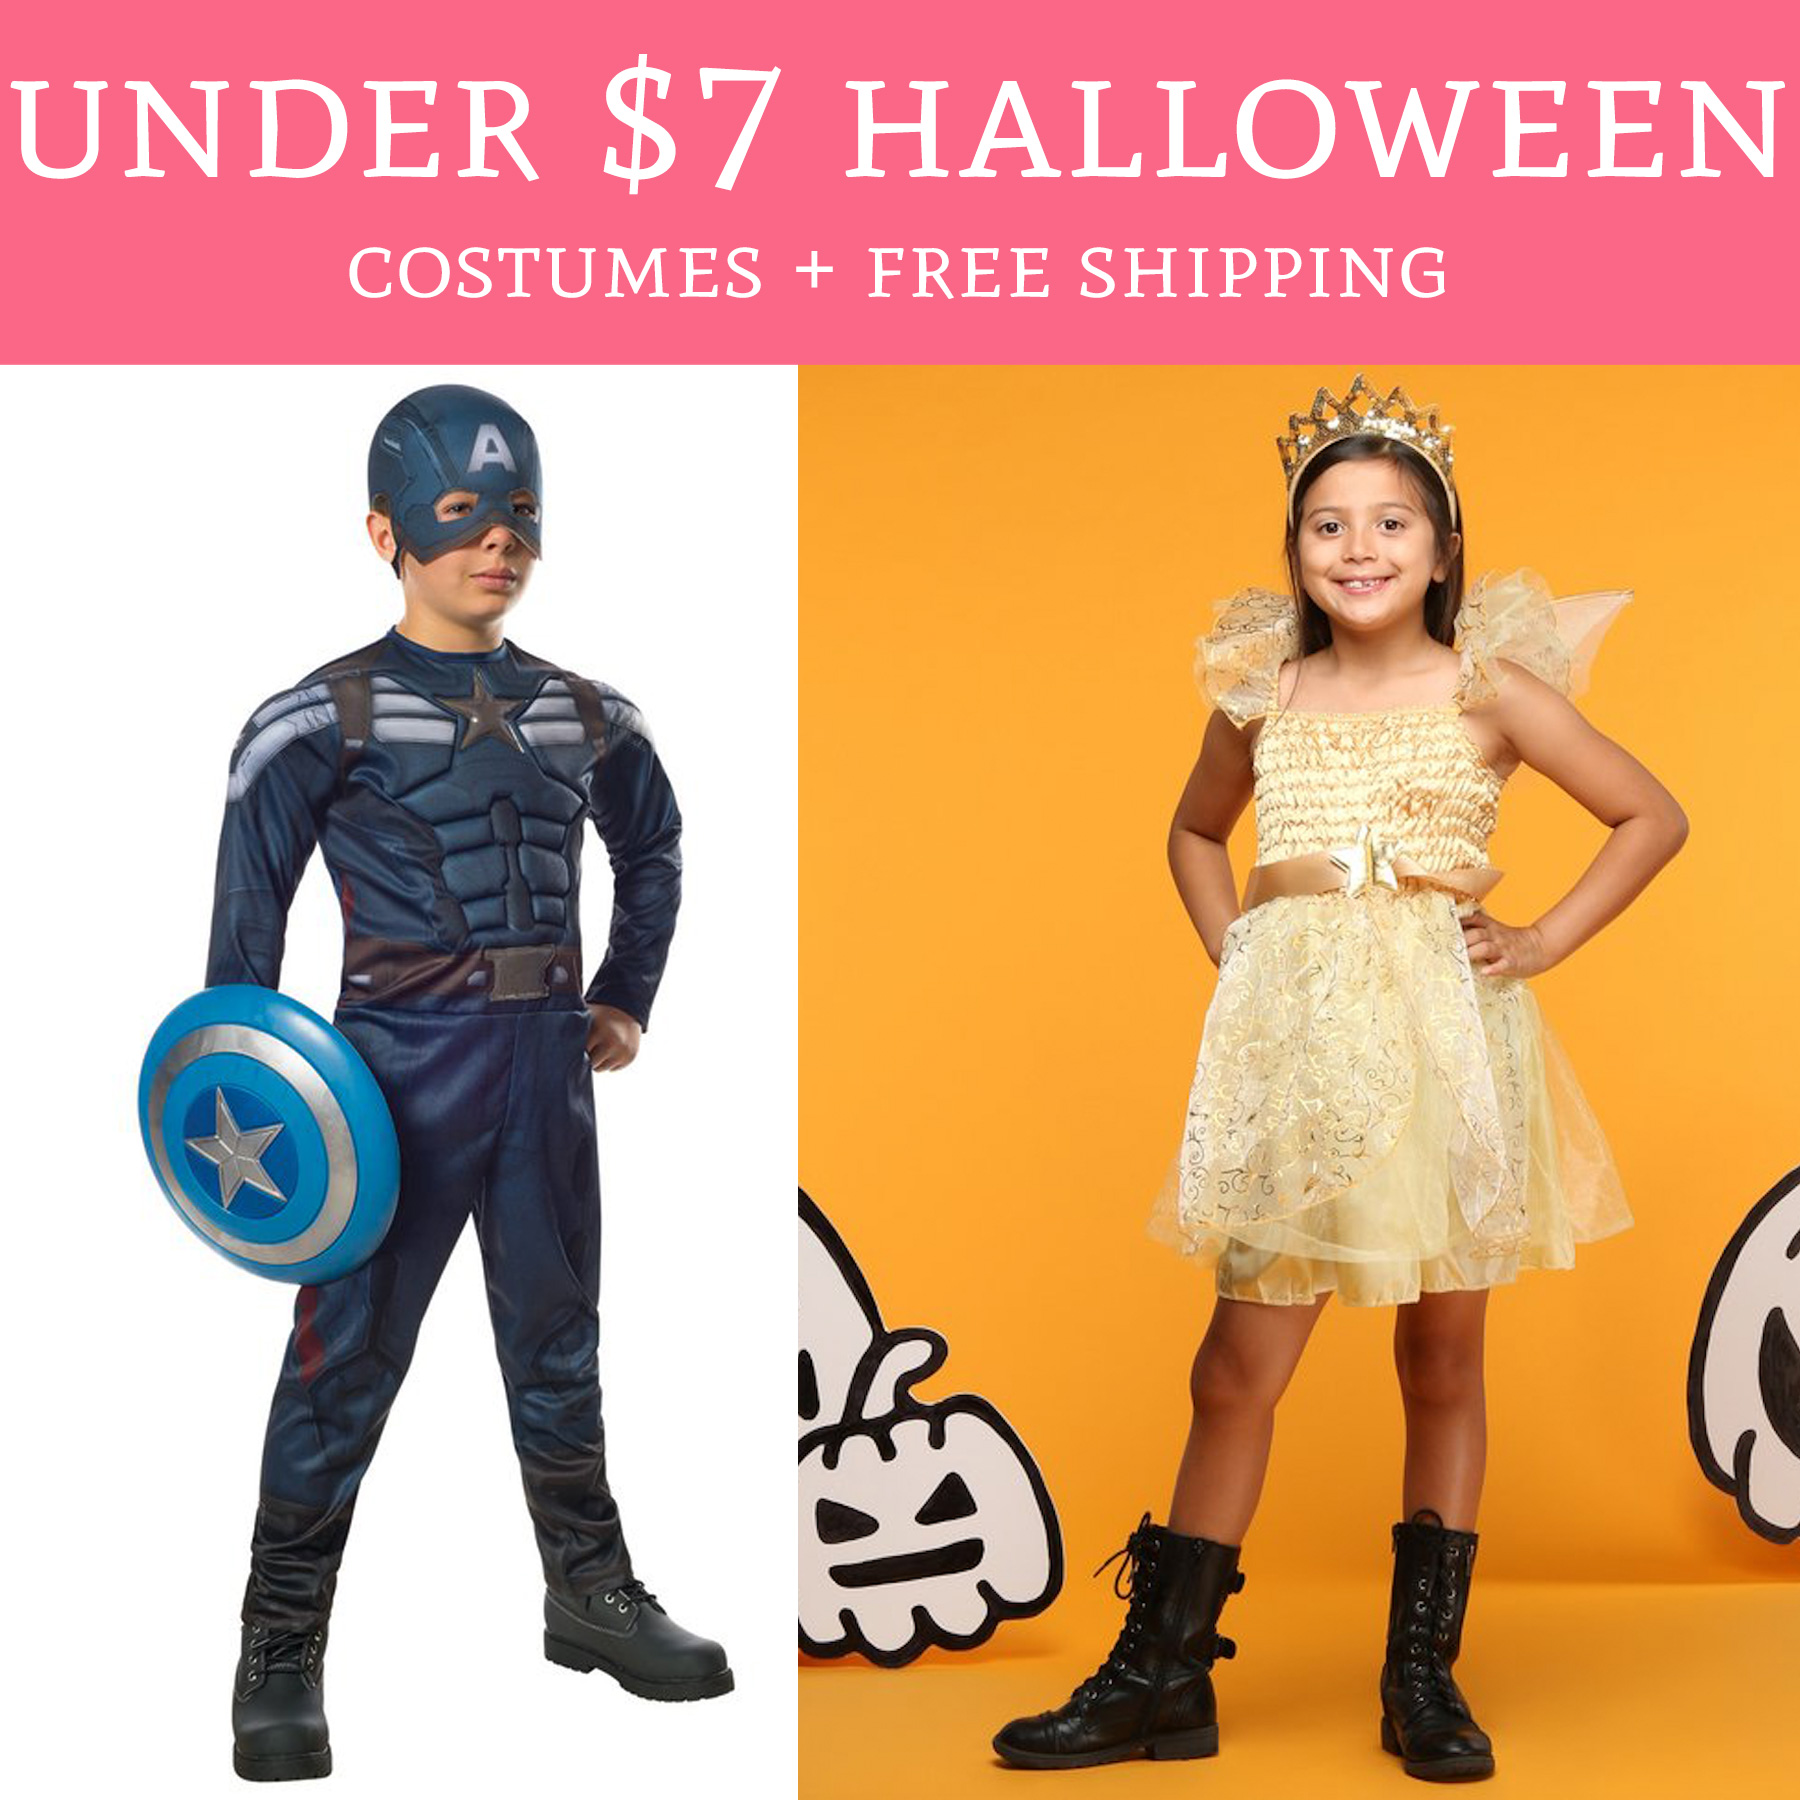 hot! under $7 halloween costumes + free shipping - deal hunting babe